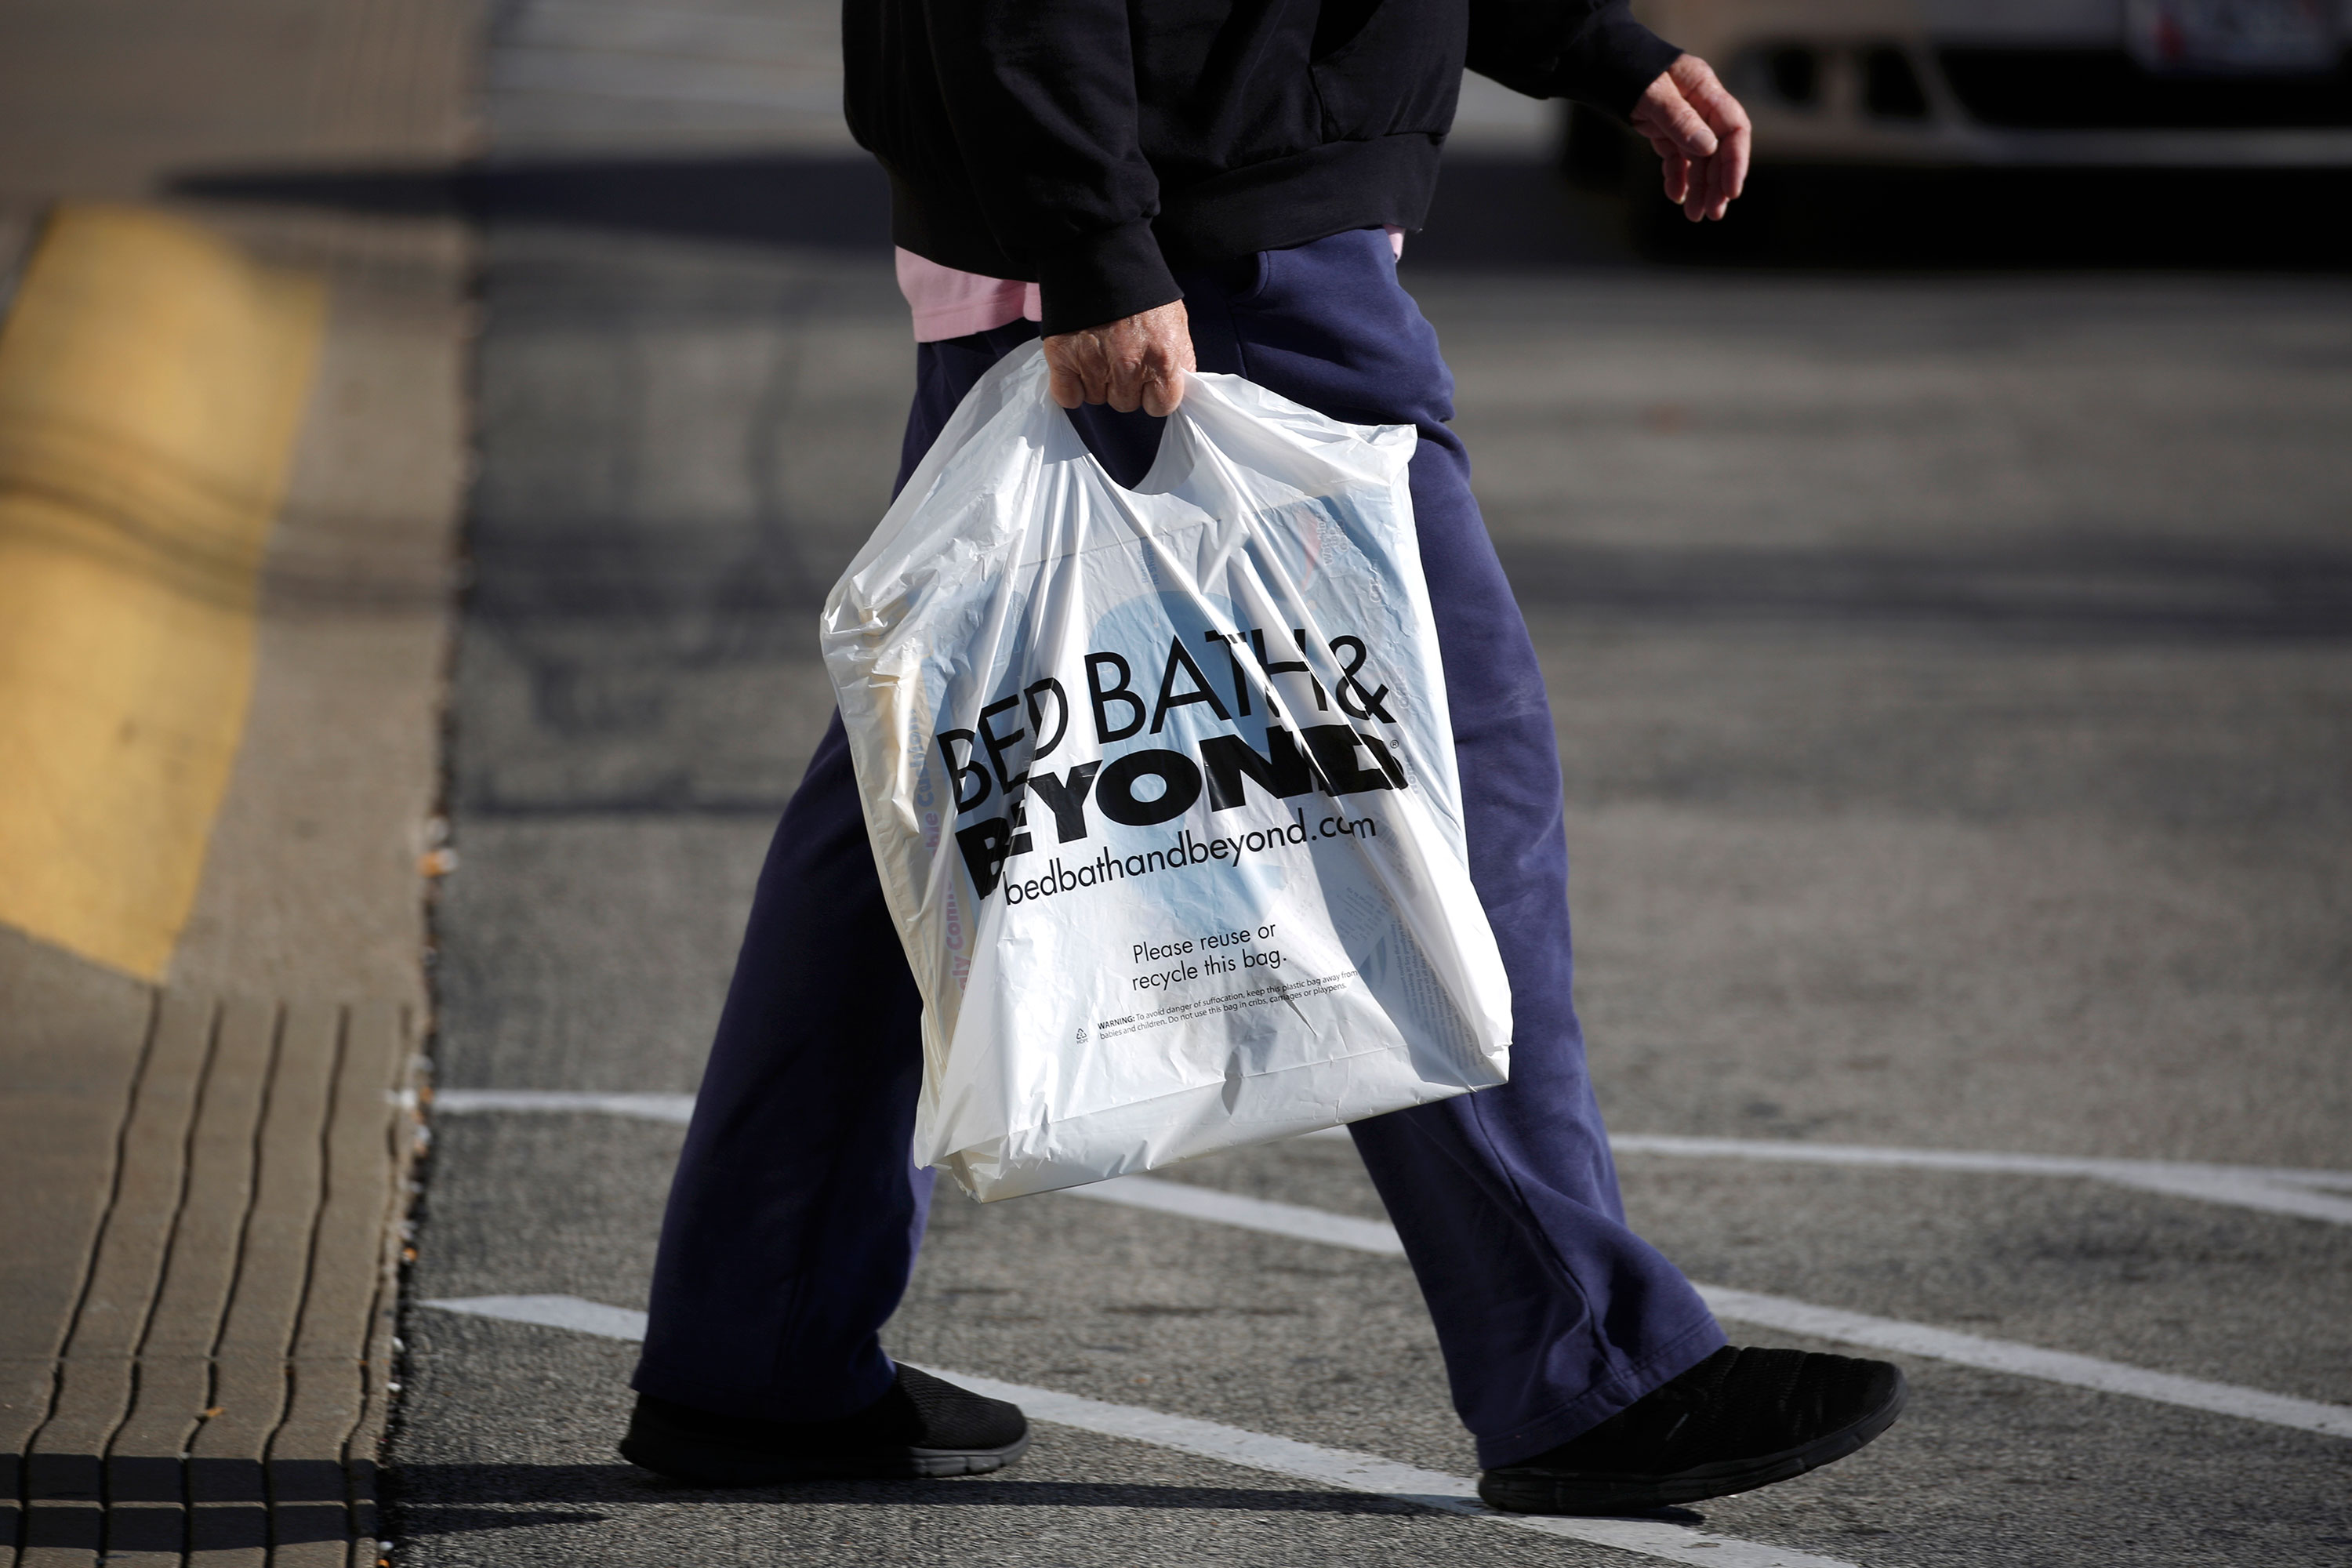 Bed Bath & Beyond plans to close 200 stores over the next two years